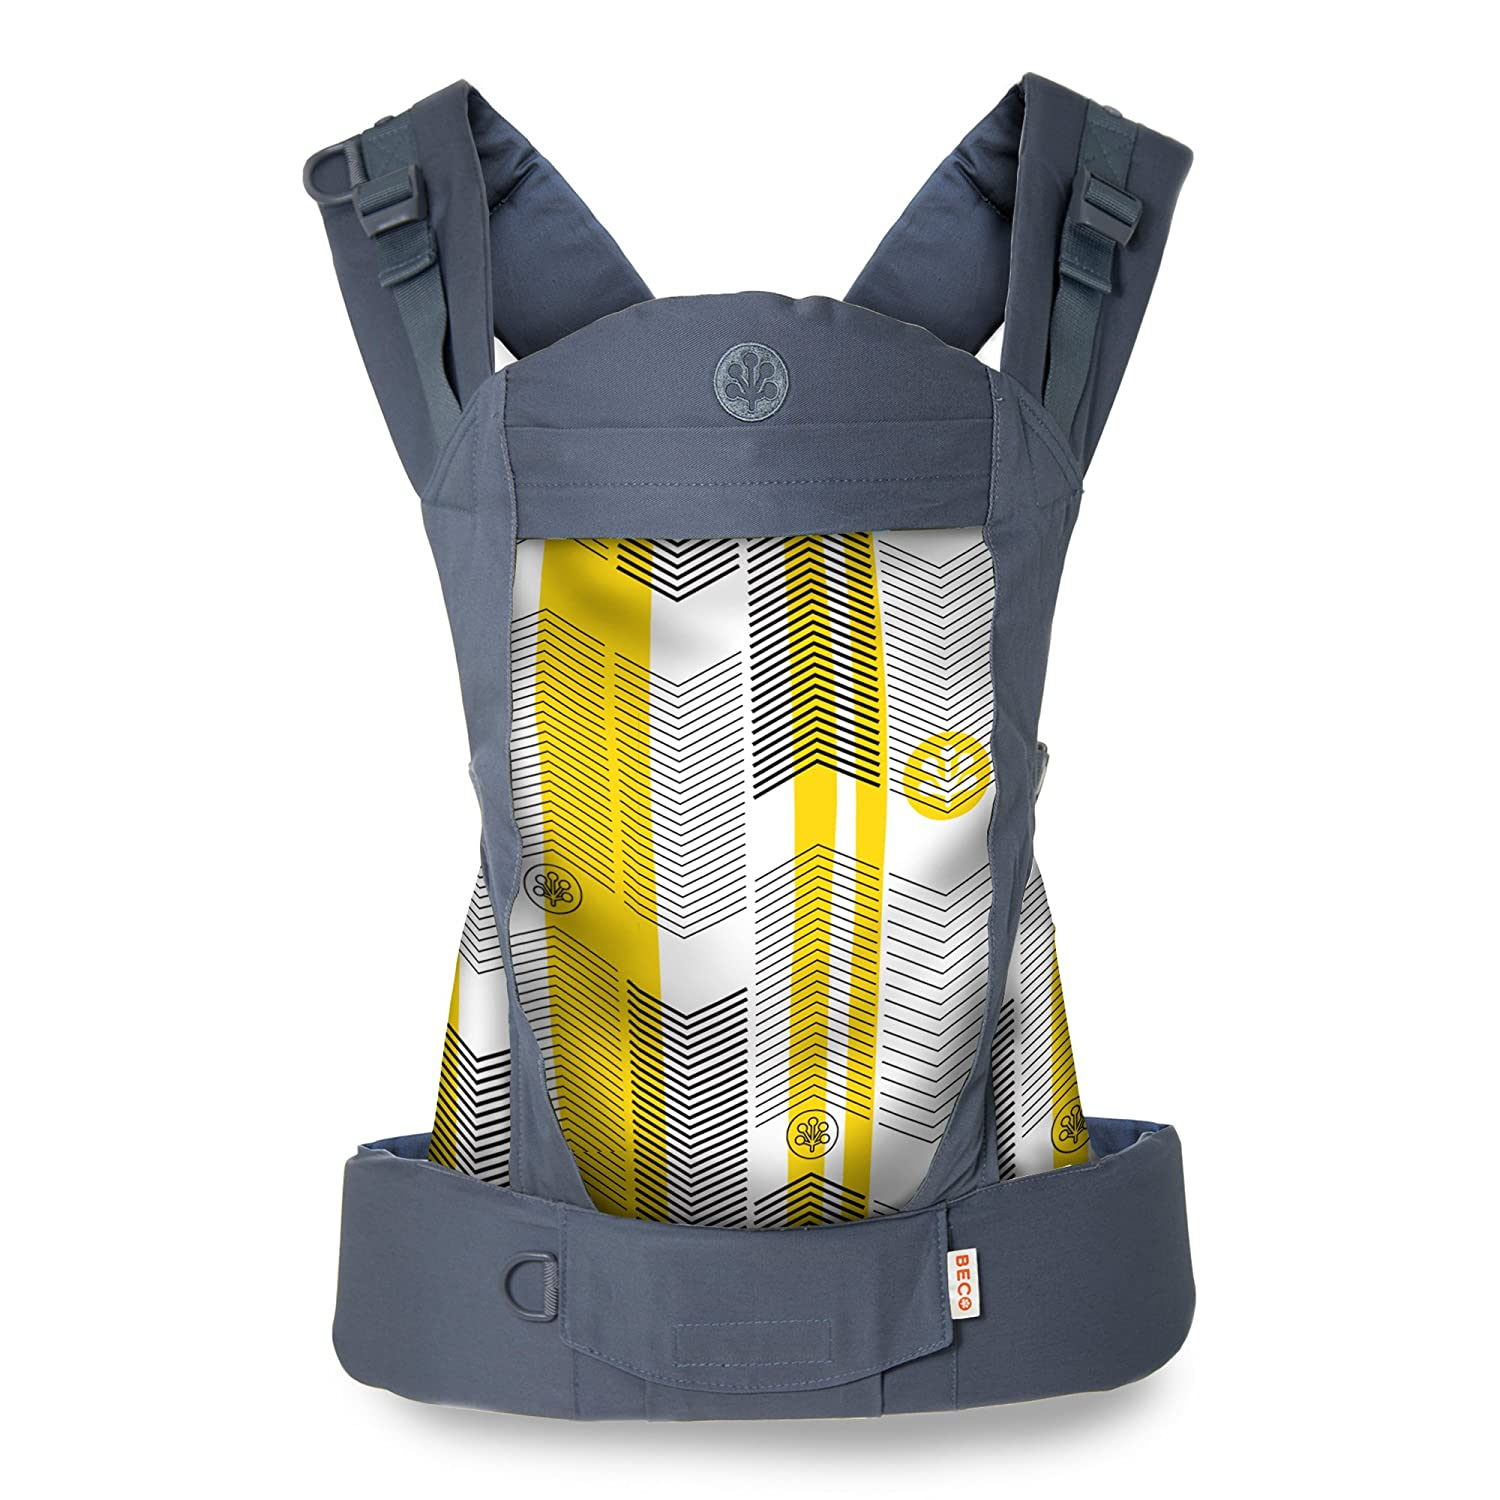 Beco Soleil Baby Carrier – Charlie